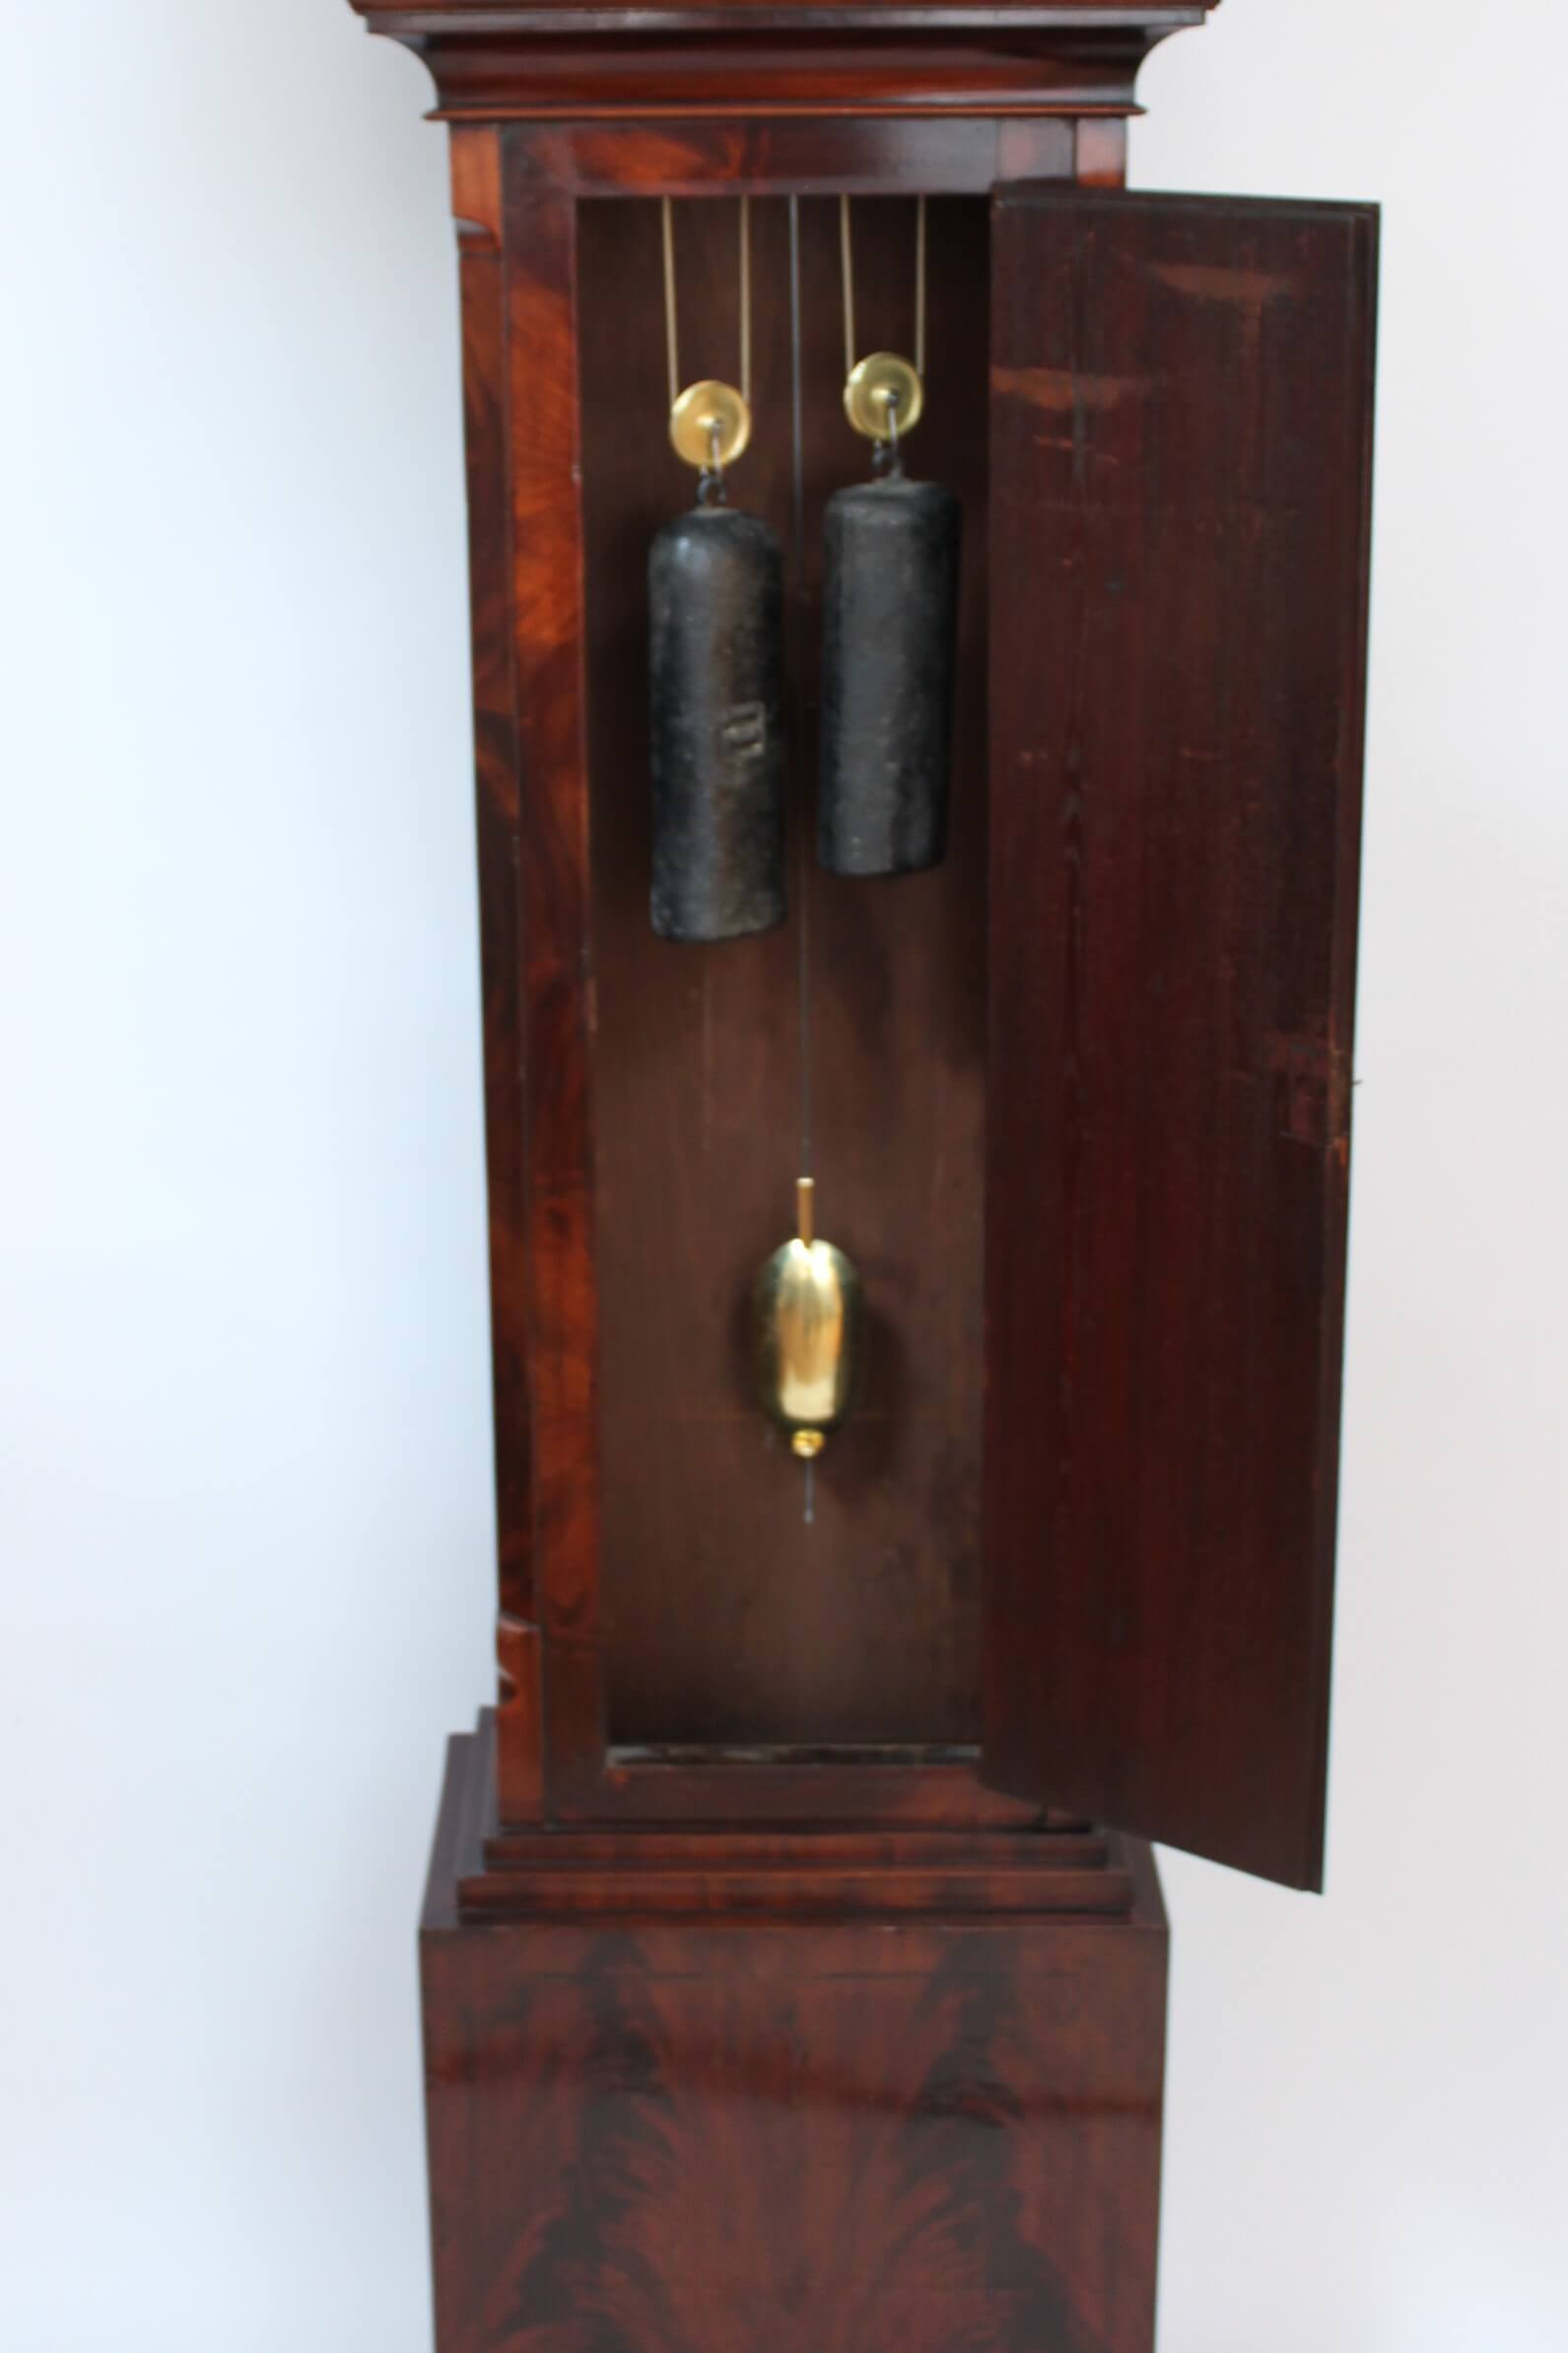 scottish-english-georgian-mahogany-miniature-brass-small-striking-mitchell-glasgow-antique-longcase-clock-